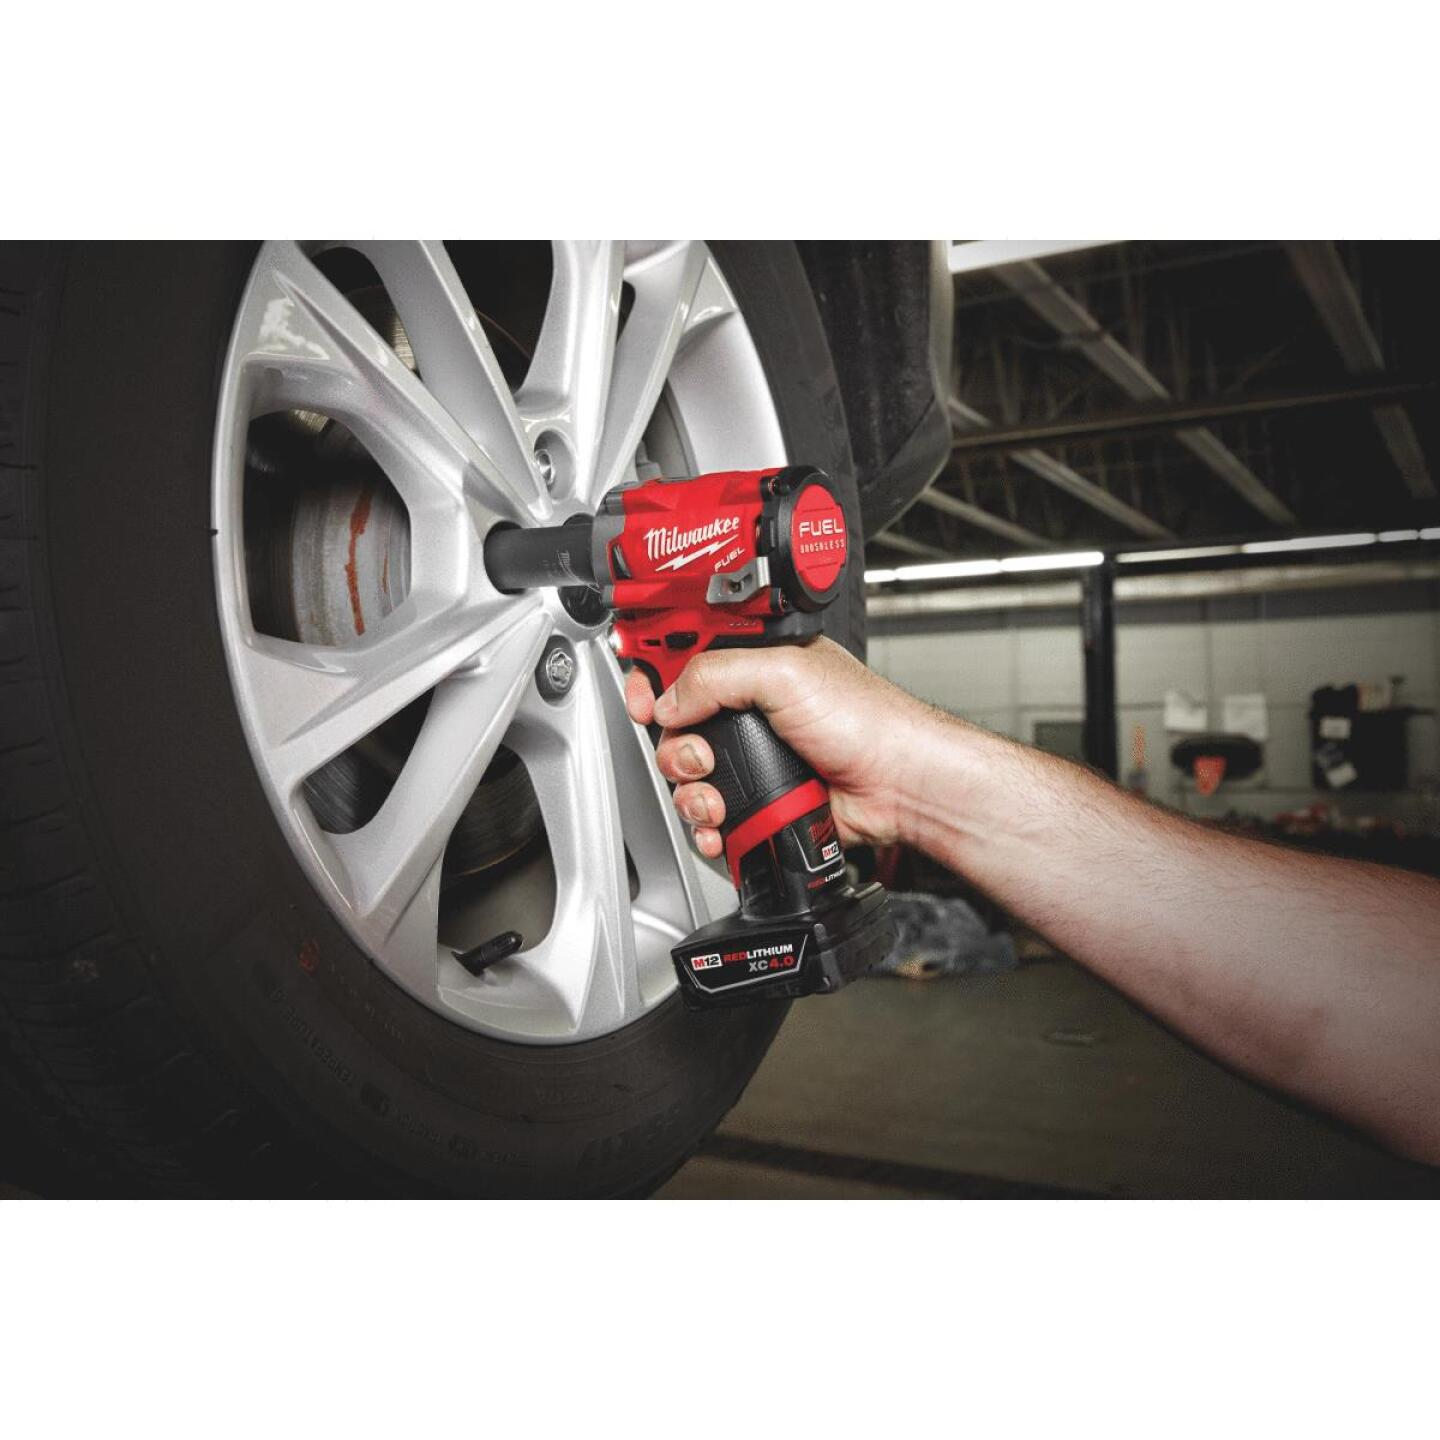 Milwaukee M12 FUEL 12 Volt Lithium-Ion Brushless 1/2 In. Stubby Cordless Impact Wrench (Bare Tool) Image 2